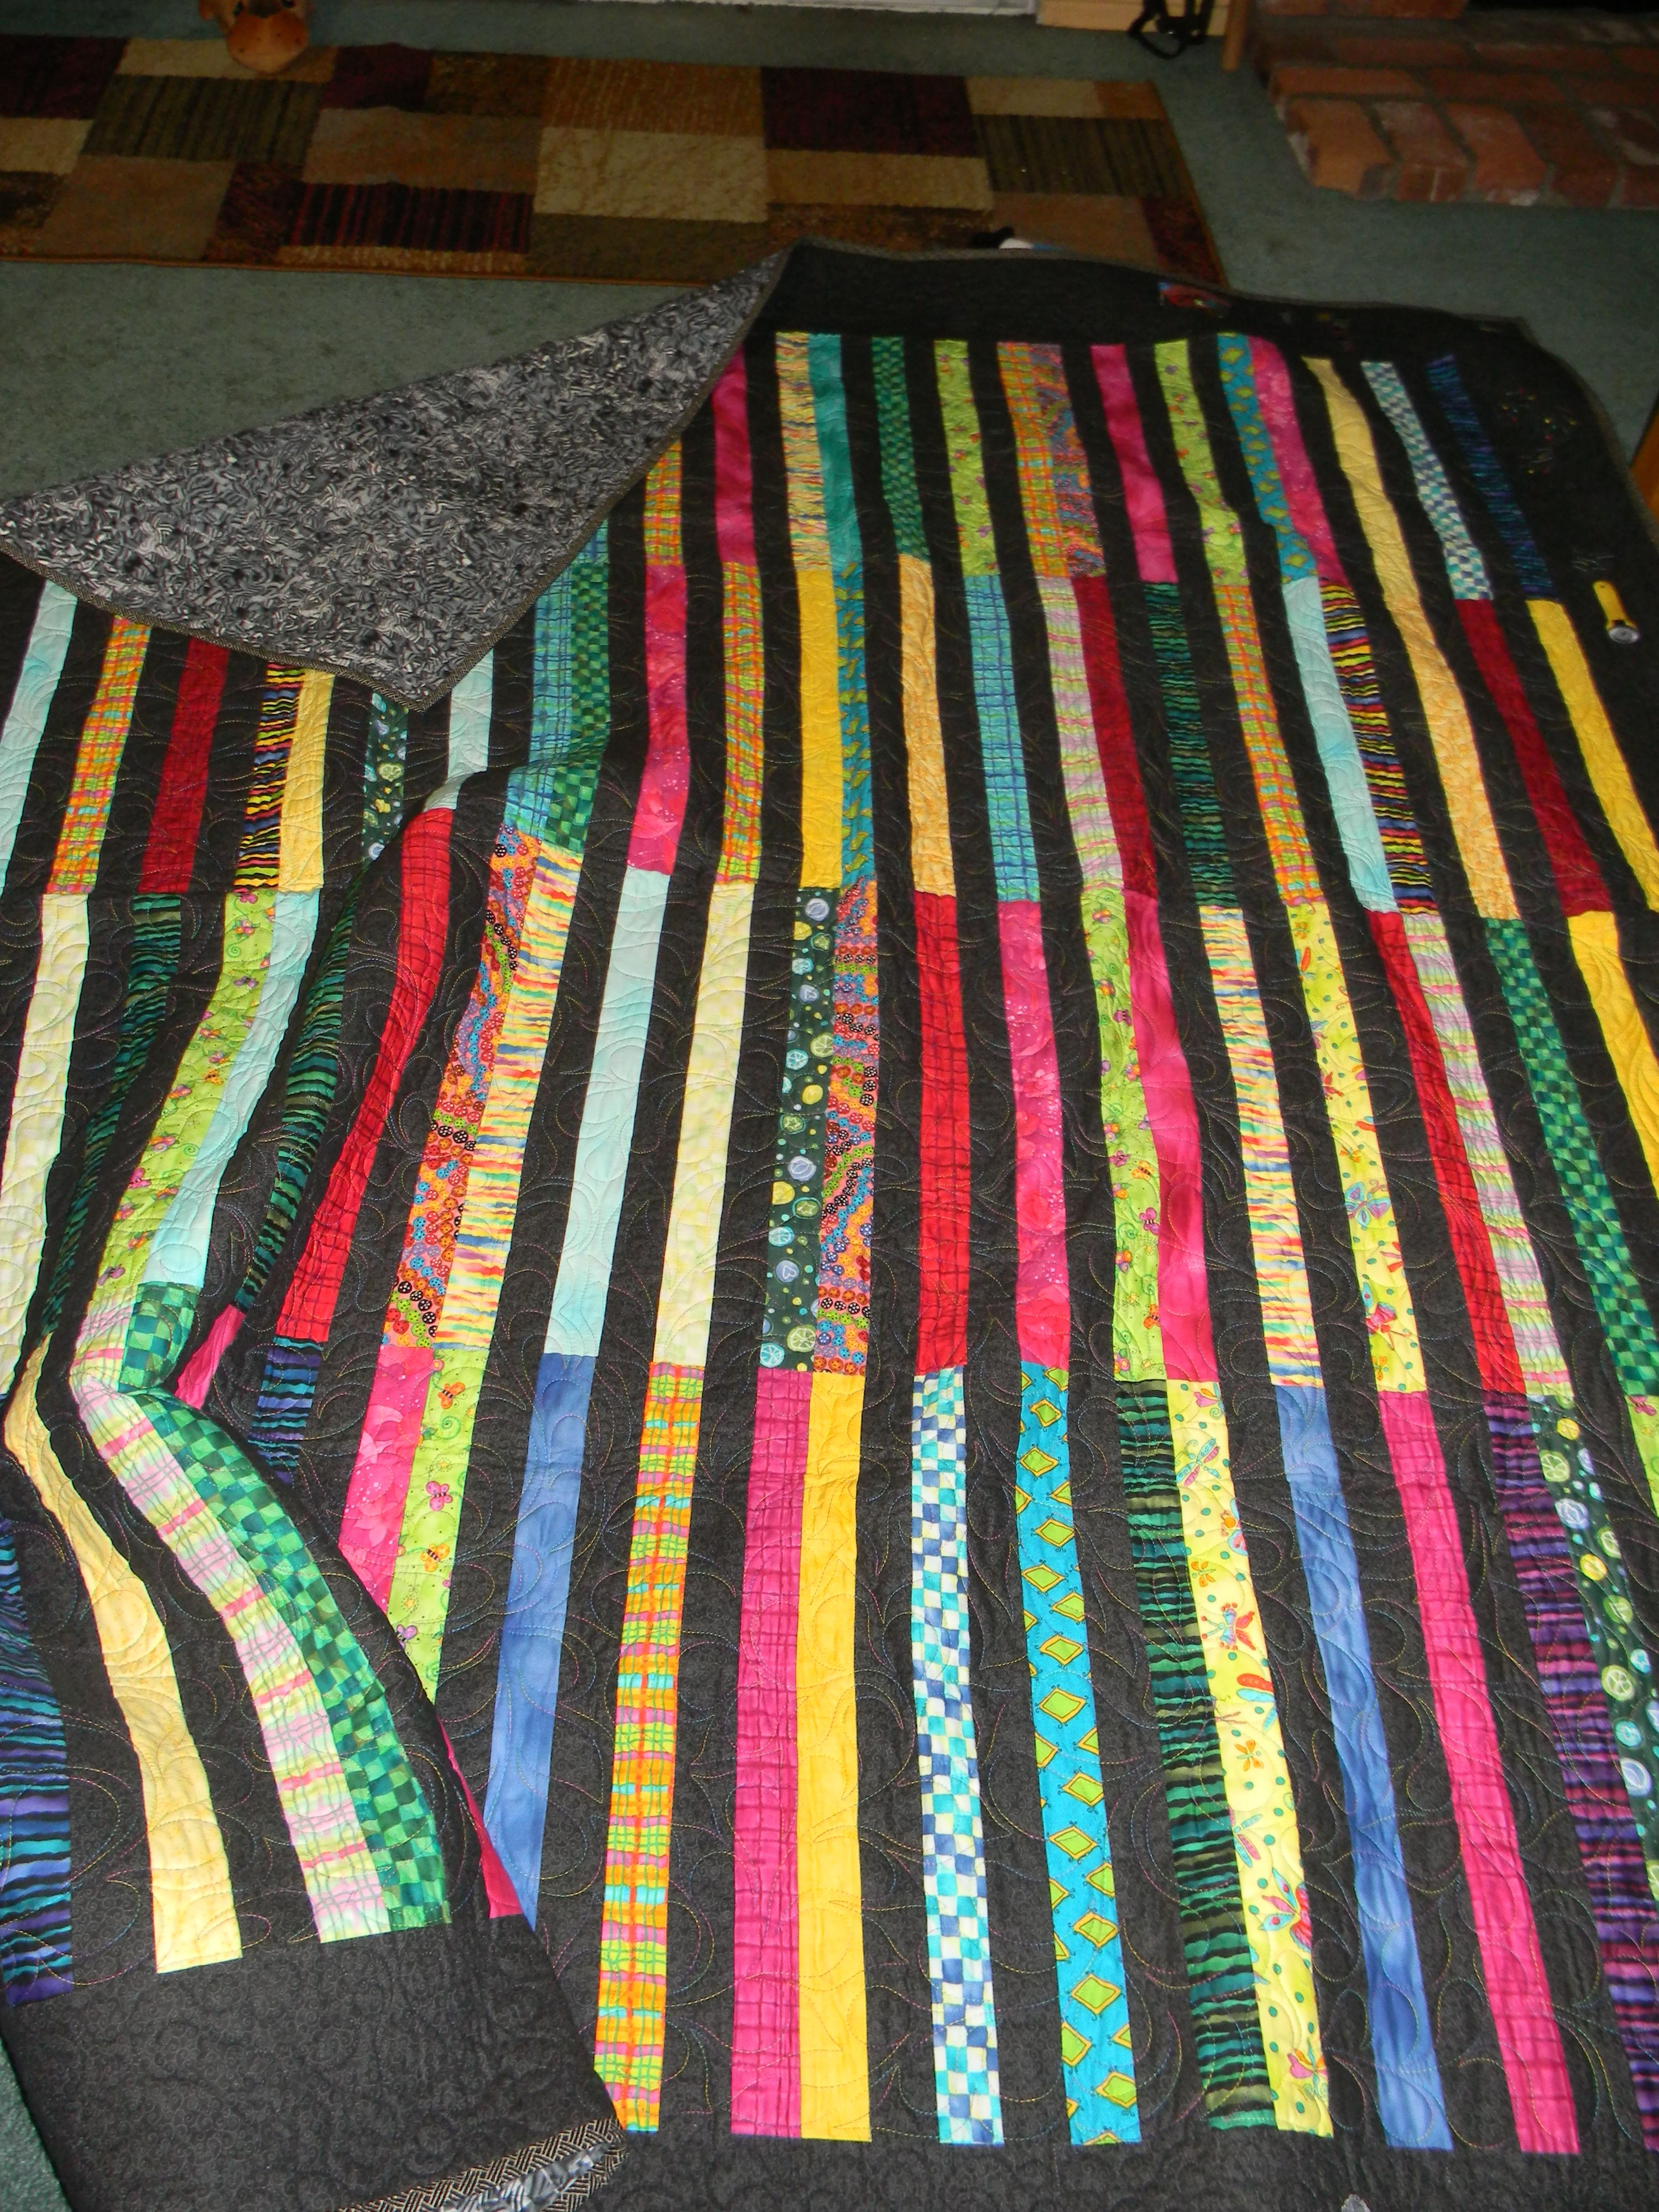 King size quilt in all colors.